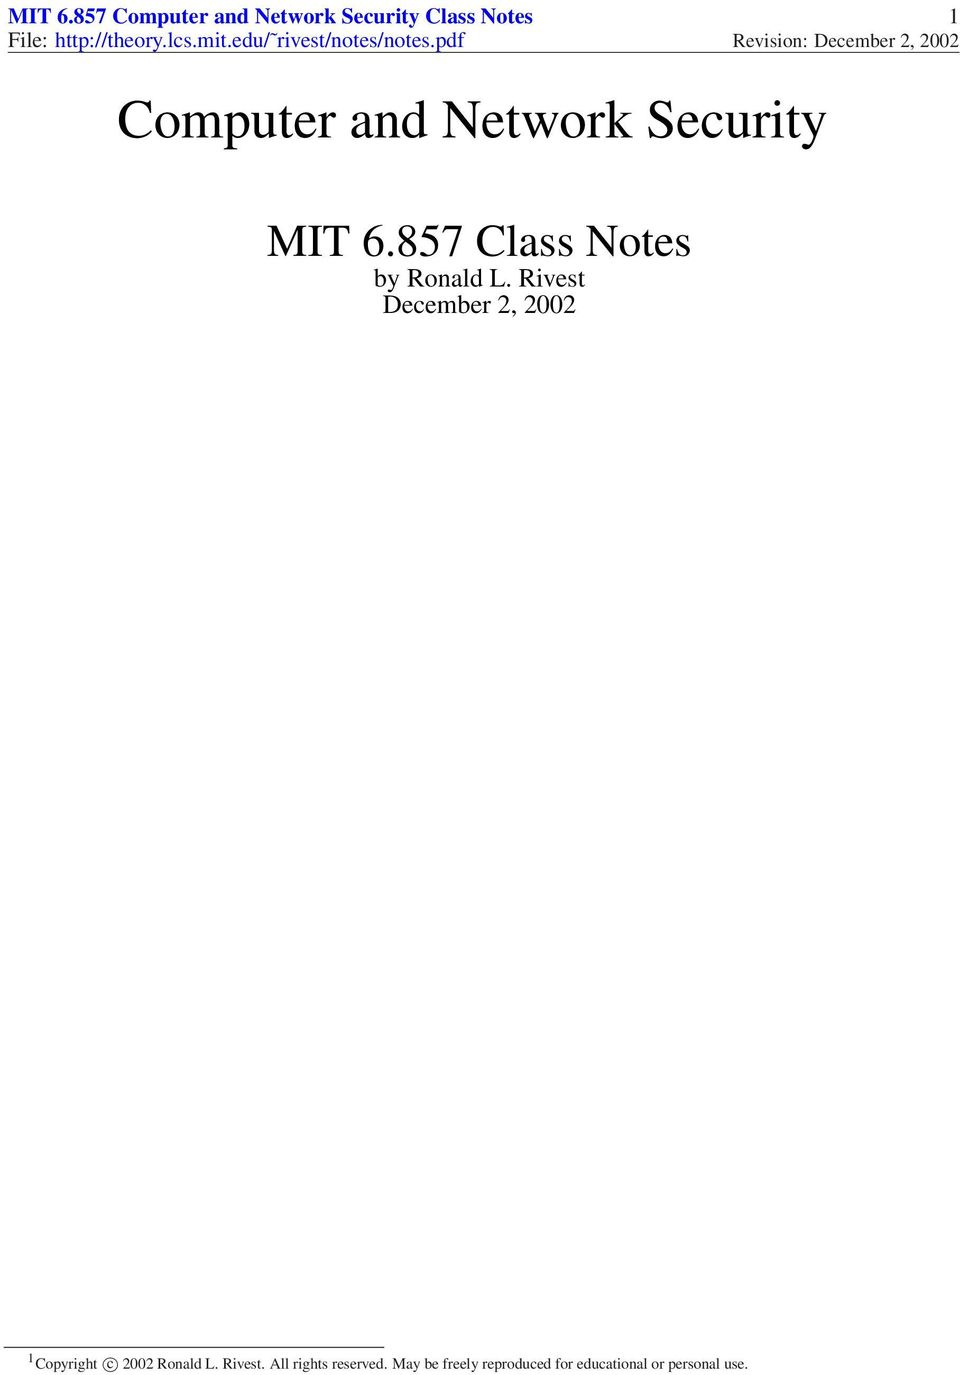 http://theory.lcs.mit.edu/ rivest/notes/notes.